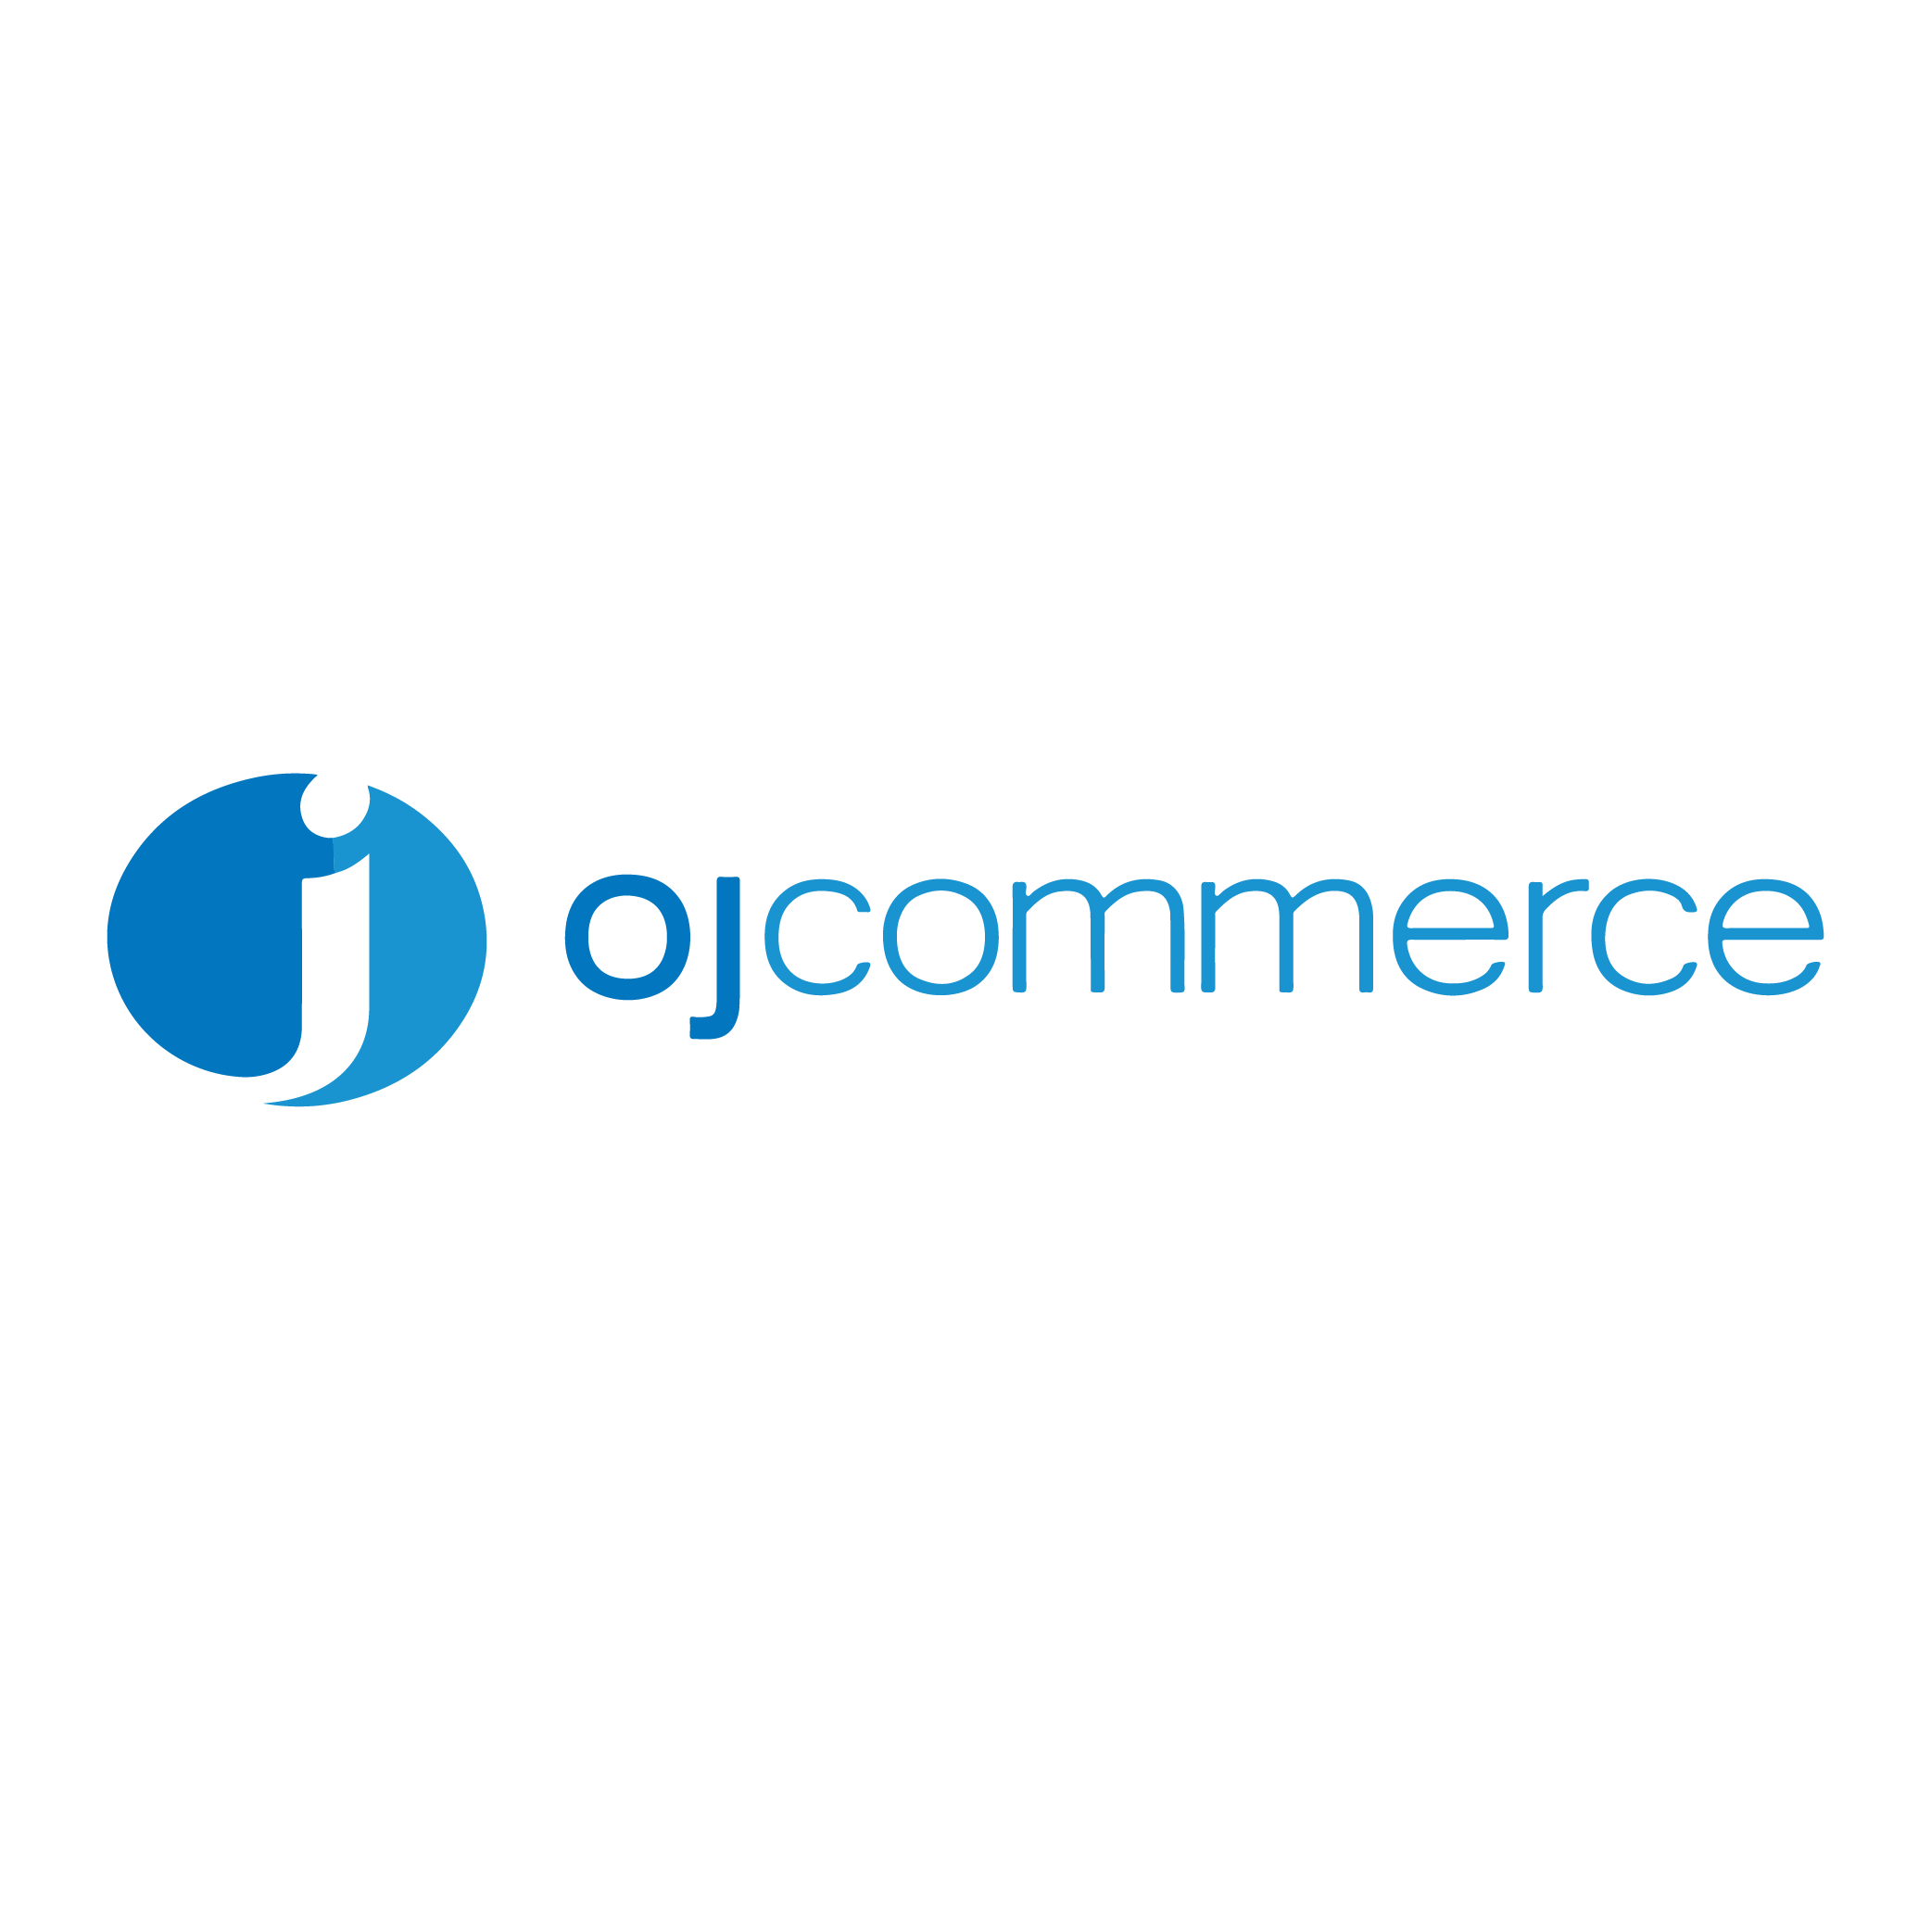 OJ-Commerce-01